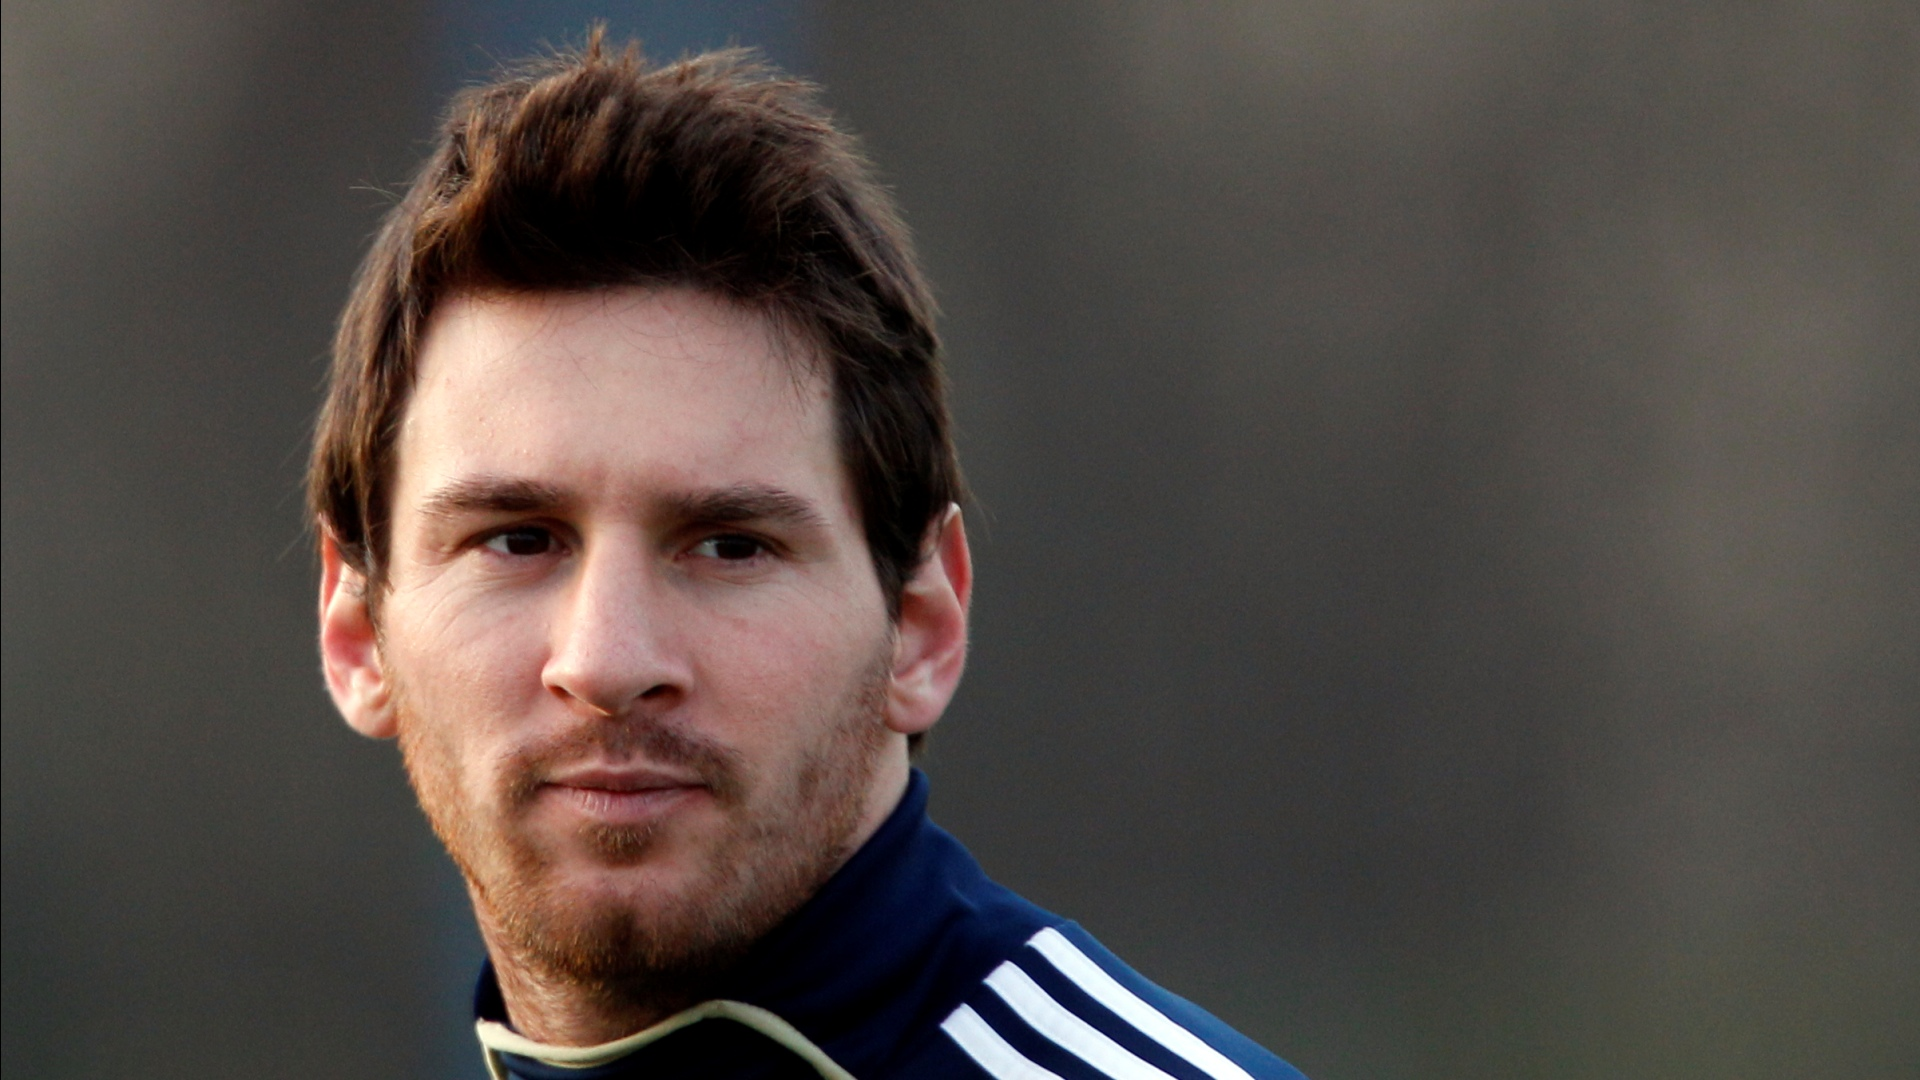 Lionel Messi K Wallpapers  HD Wallpapers 1920x1080